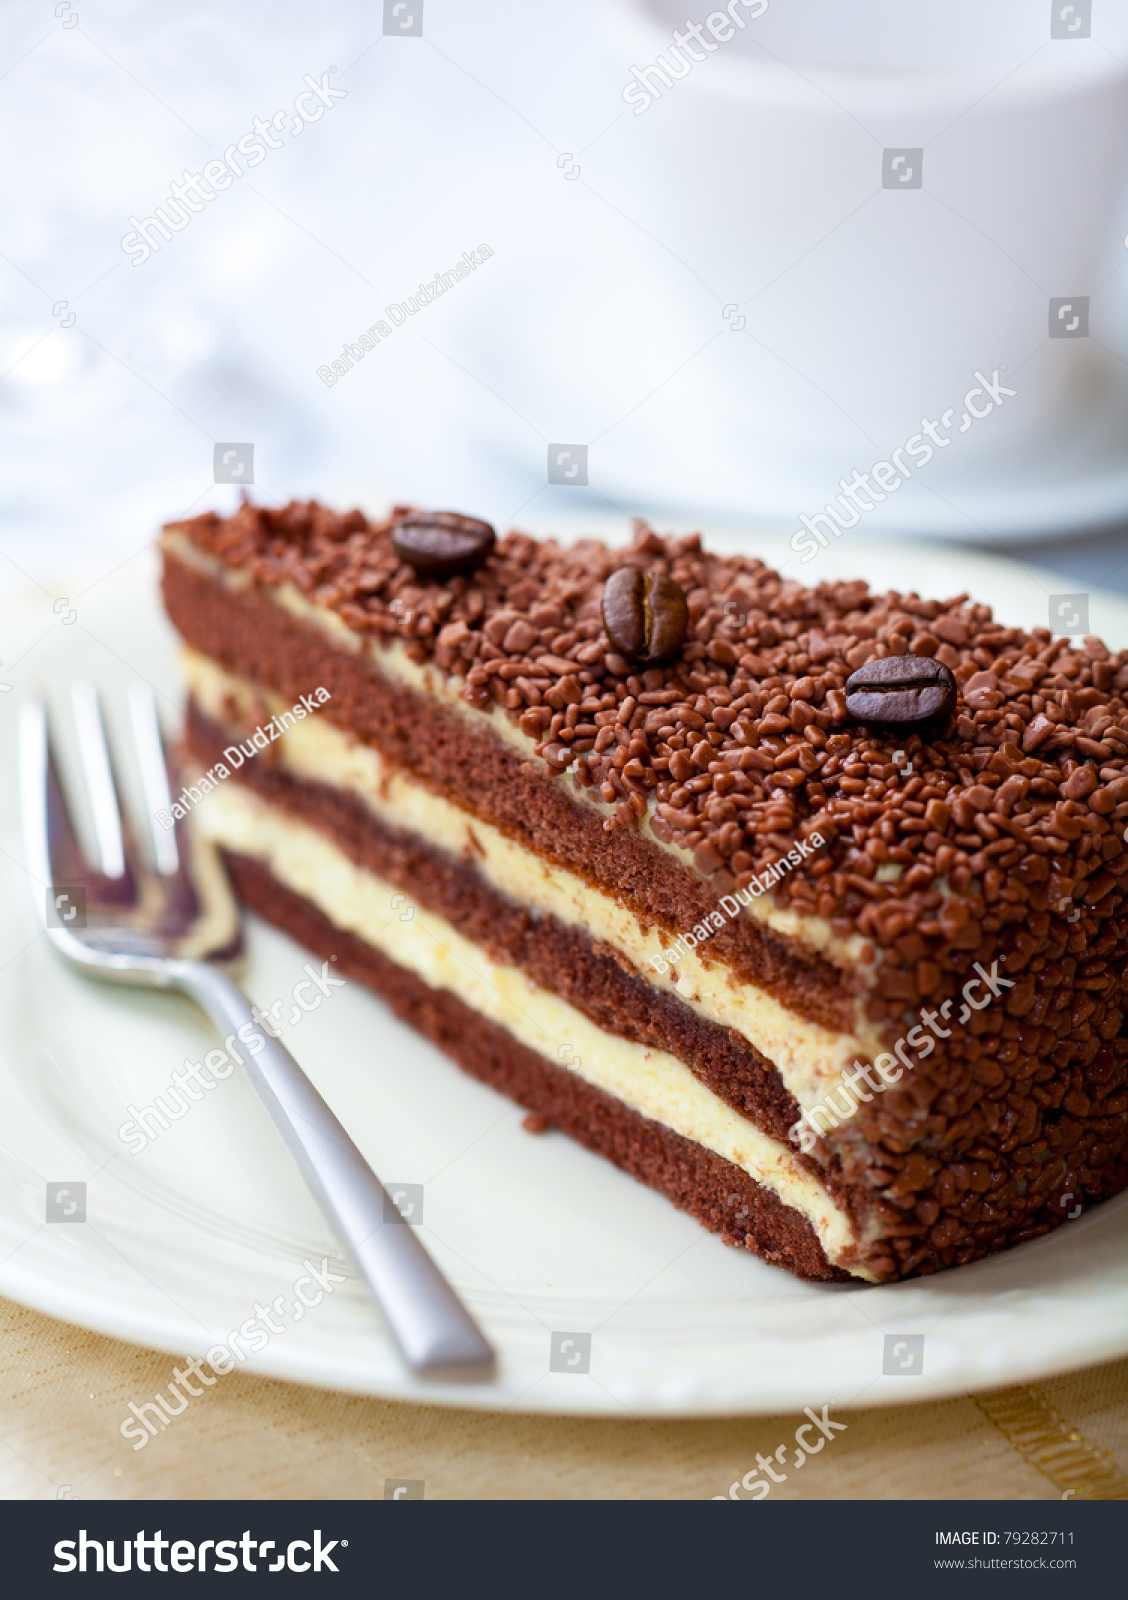 Chocolate Cake With Coffee Beans Stock Photo 79282711 ...